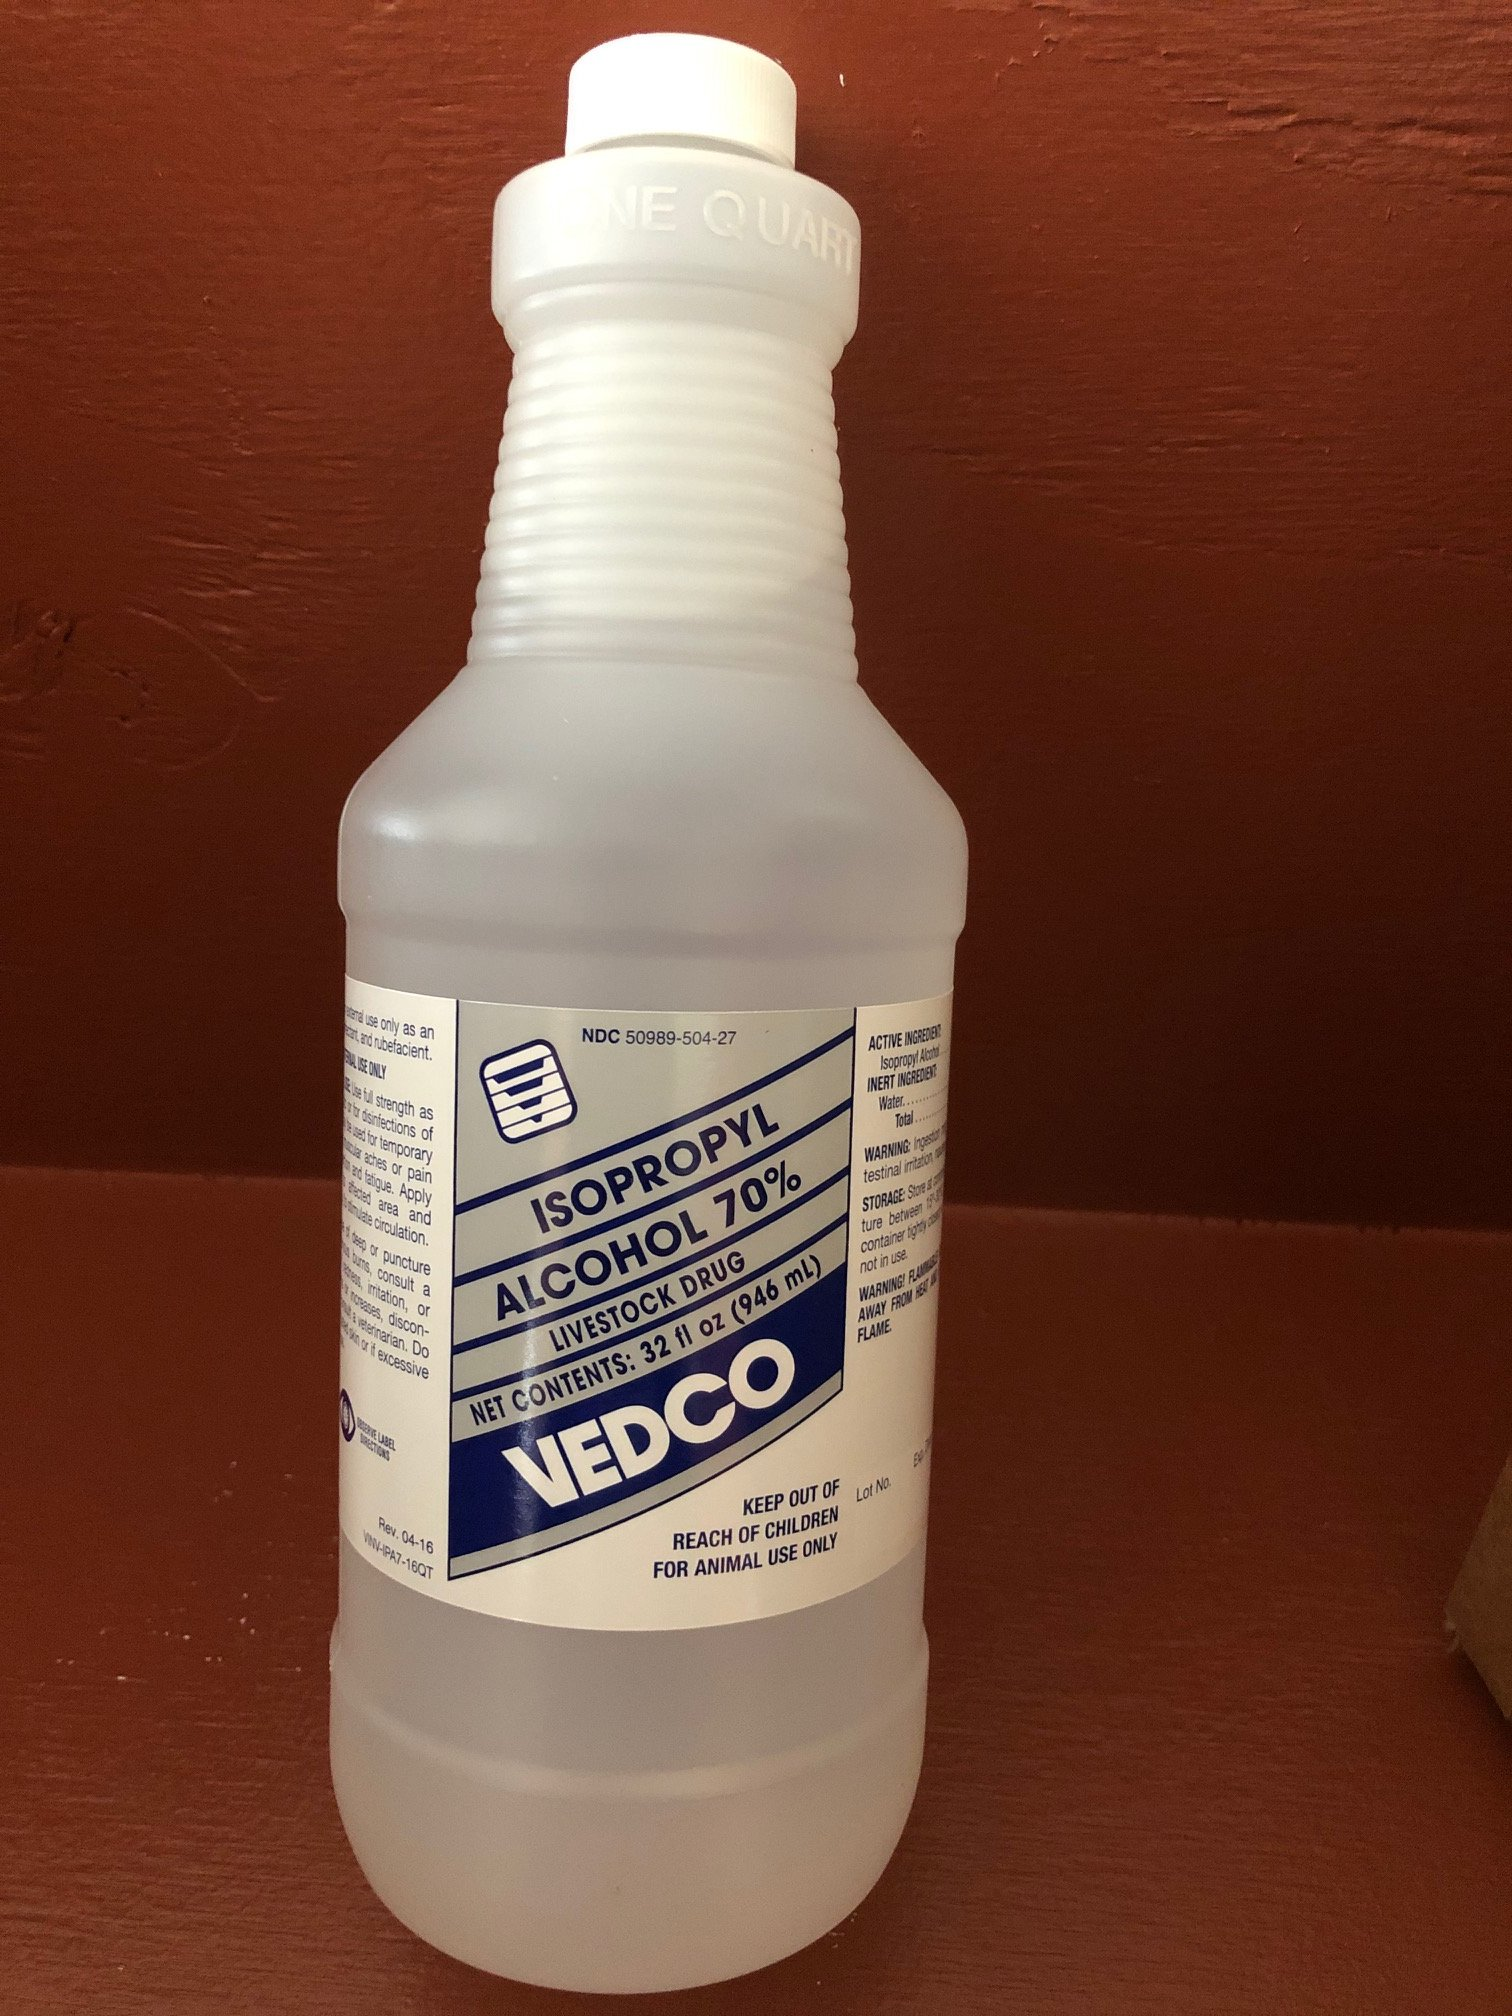 Alcohol Isopropyl 70% Qt By Vedco(Vet) Veterinarian Use 32 oz